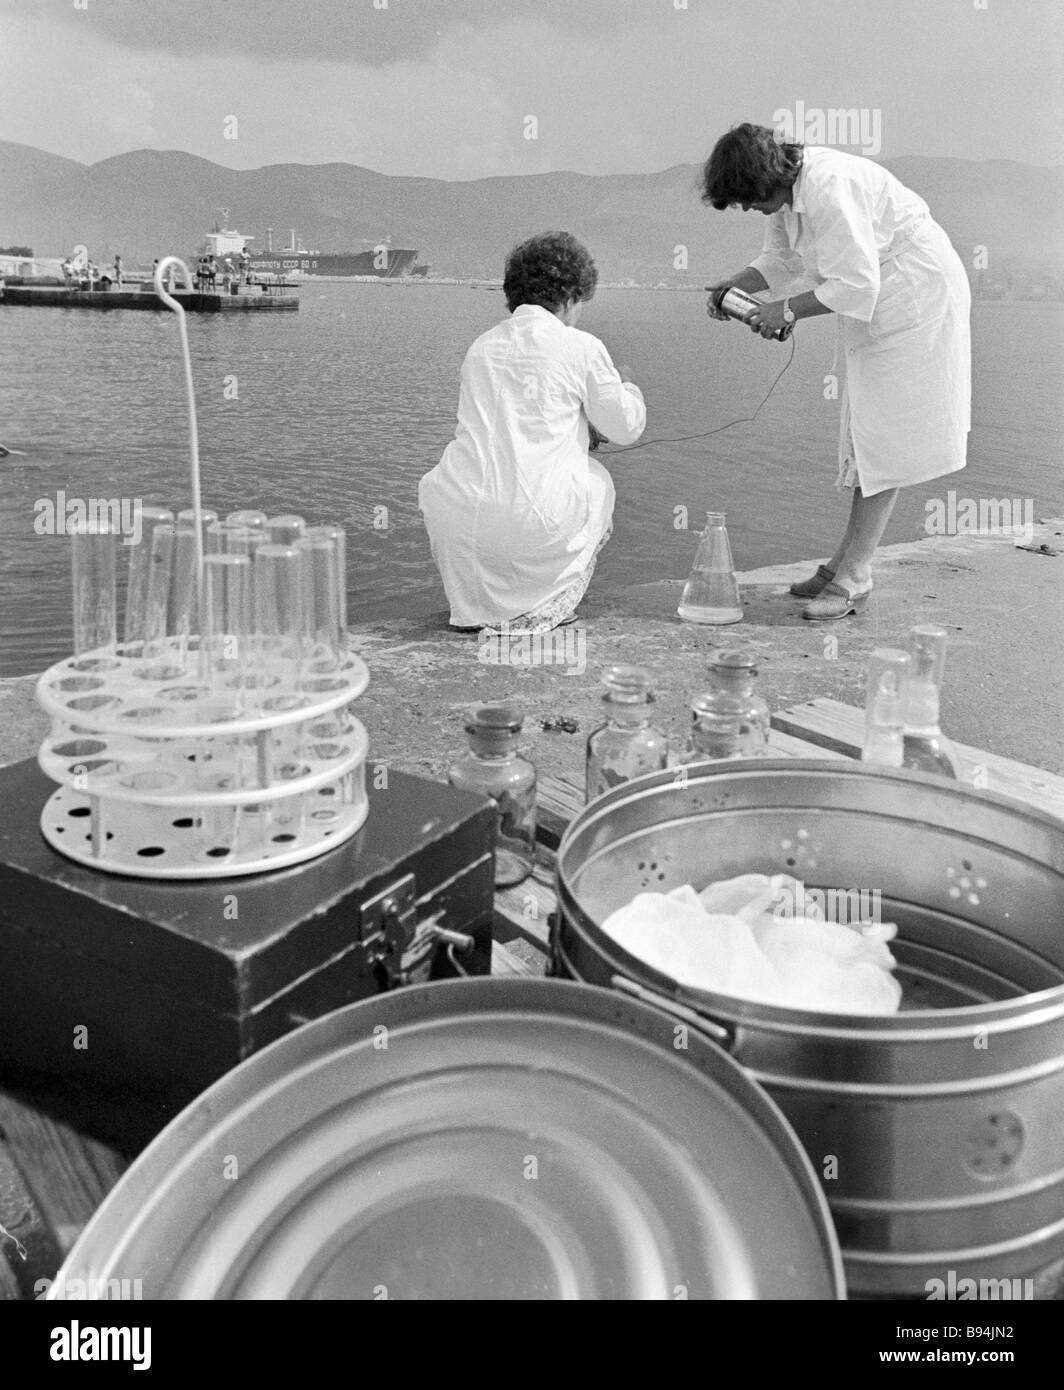 Assistants of the municipal sanitary epidemiological service taking sea water samples on the city beach Stock Photo